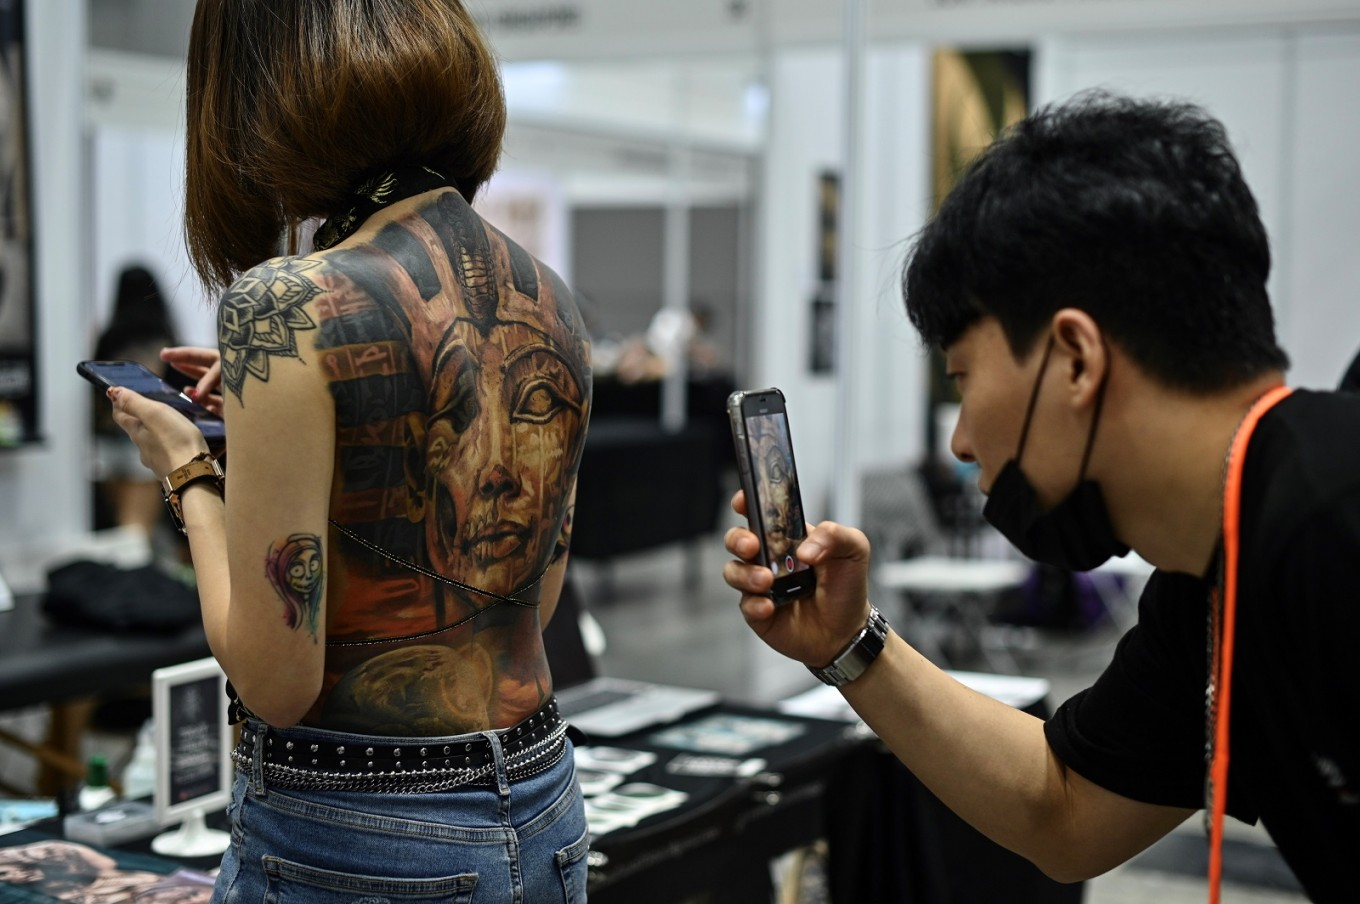 Malaysia orders inquiry over 'half-naked' tattoo show